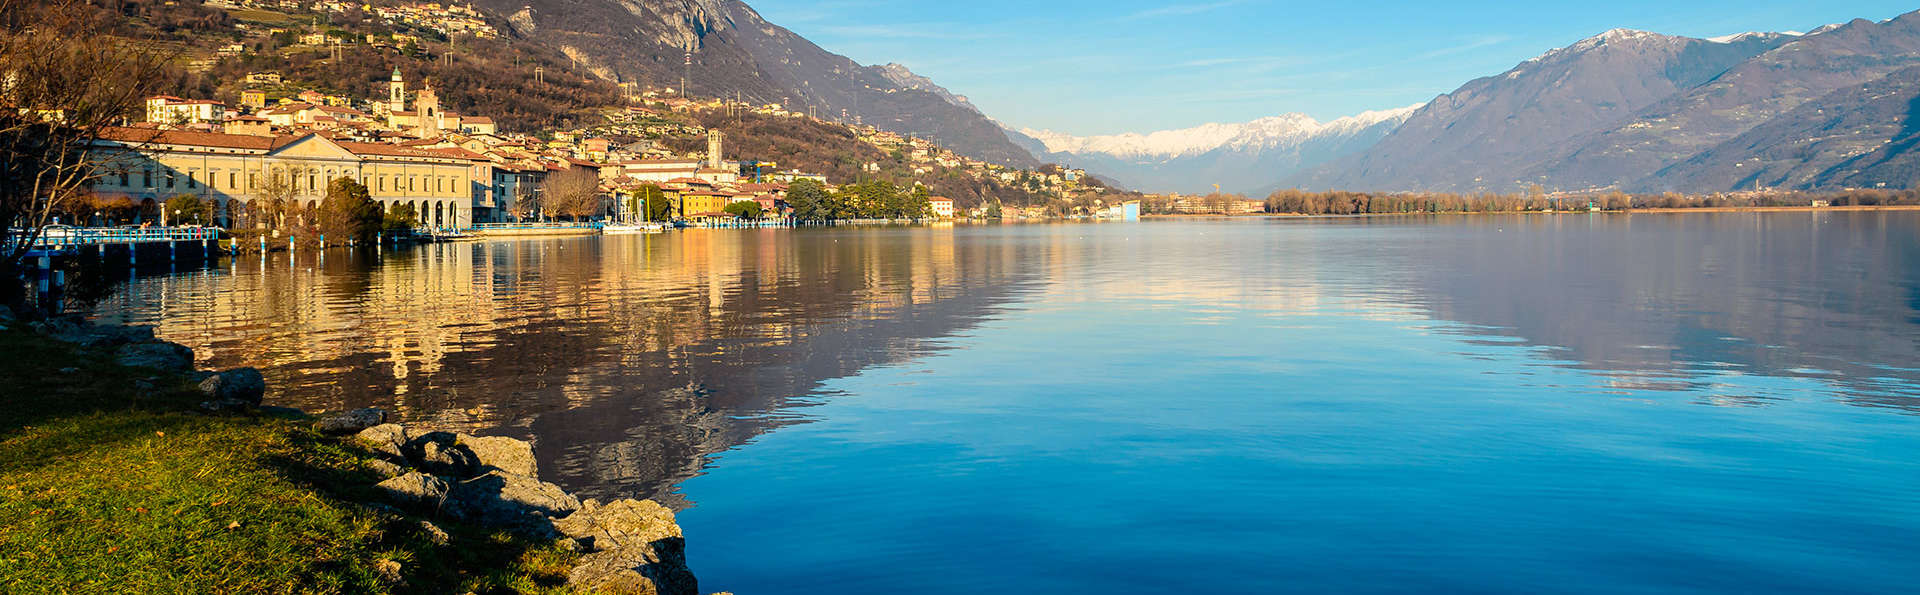 Hotel Lovere Resort & Spa - edit_iseo.jpg